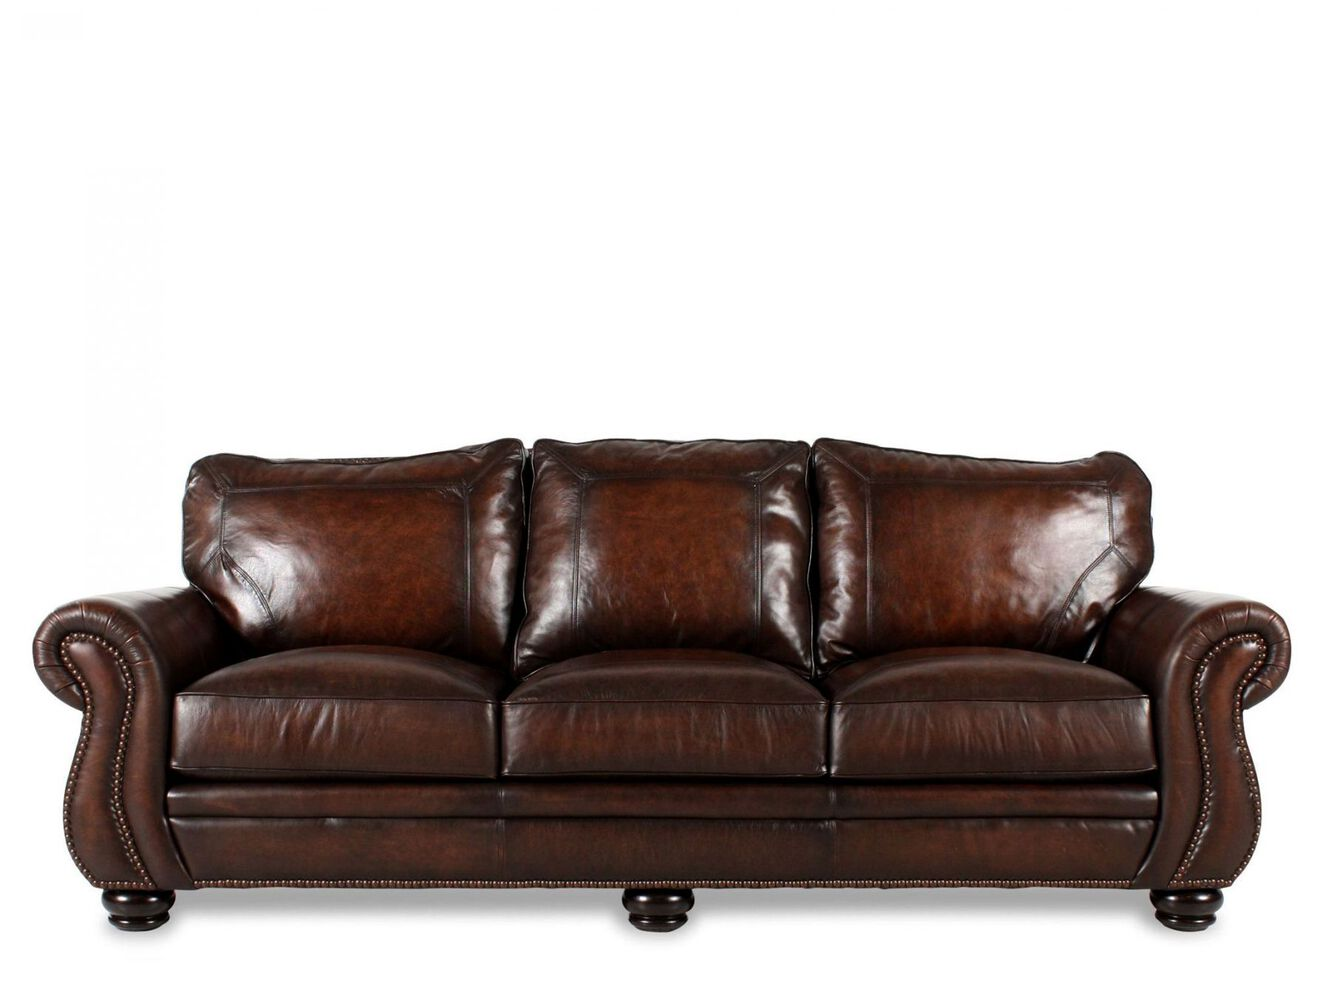 bernhardt leather sofa mathis brothers. Black Bedroom Furniture Sets. Home Design Ideas